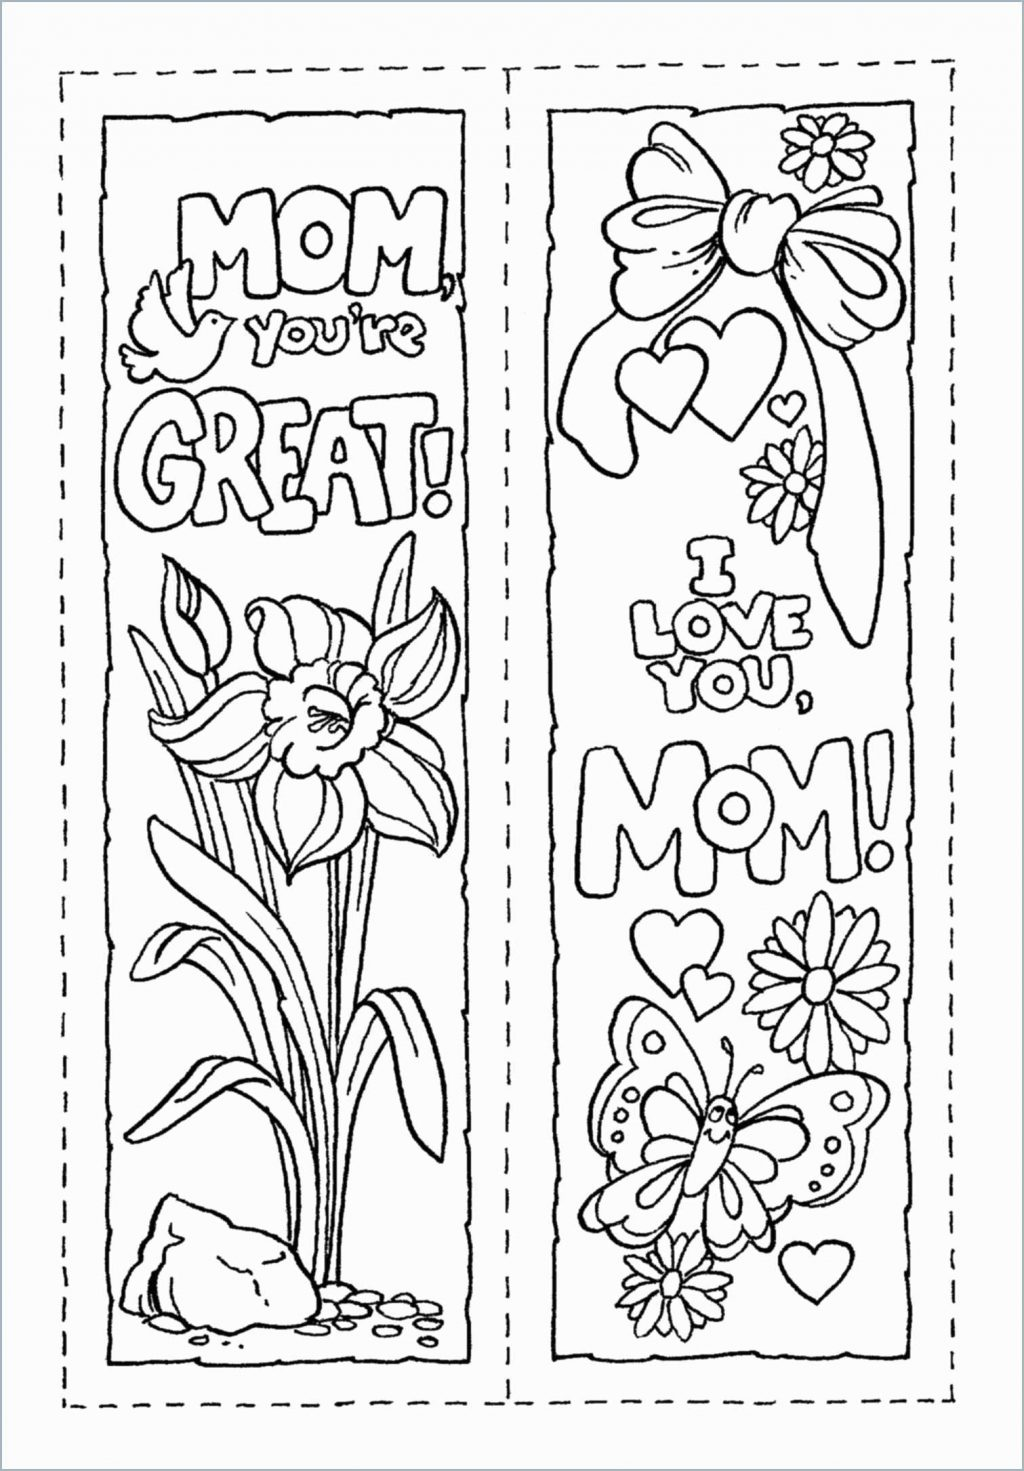 Coloring Pages ~ Cool Coloring Bookmarks Inspirational Home